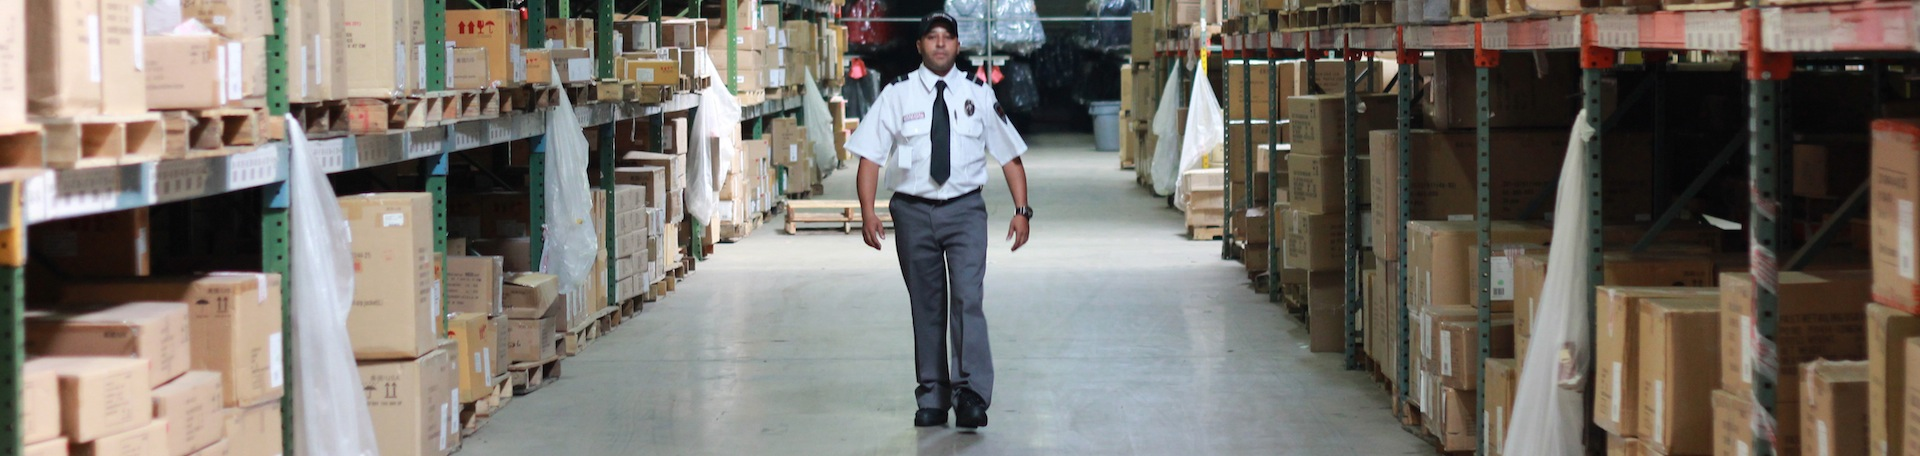 Sangar Security provideswarehouse security to ensure against theft and non-theft losses.